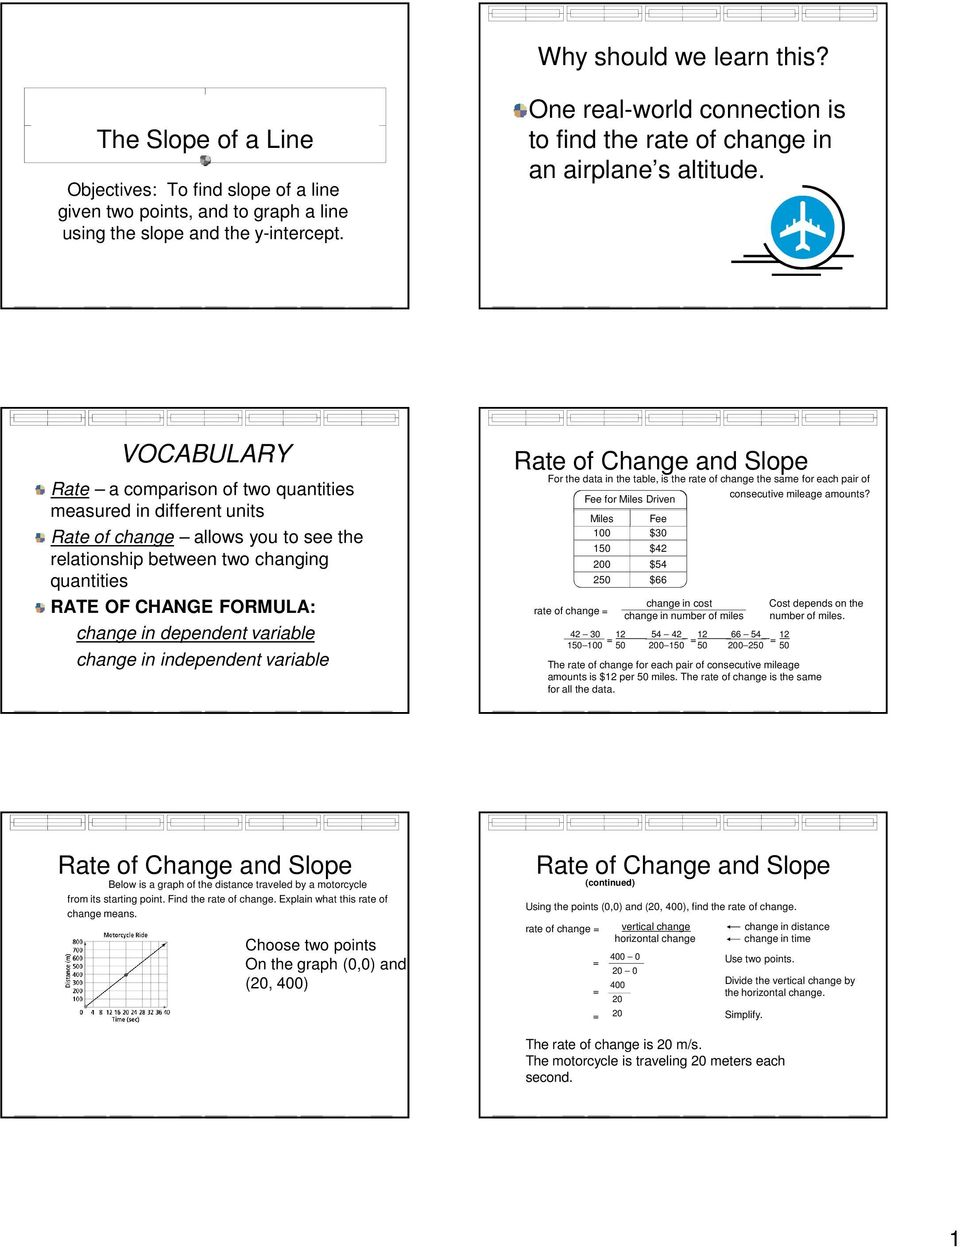 VOCABULARY Rate a comparison of two quantities measured in different units Rate of change allows ou to see the relationship between two changing quantities RATE OF CHANGE FORMULA: change in dependent